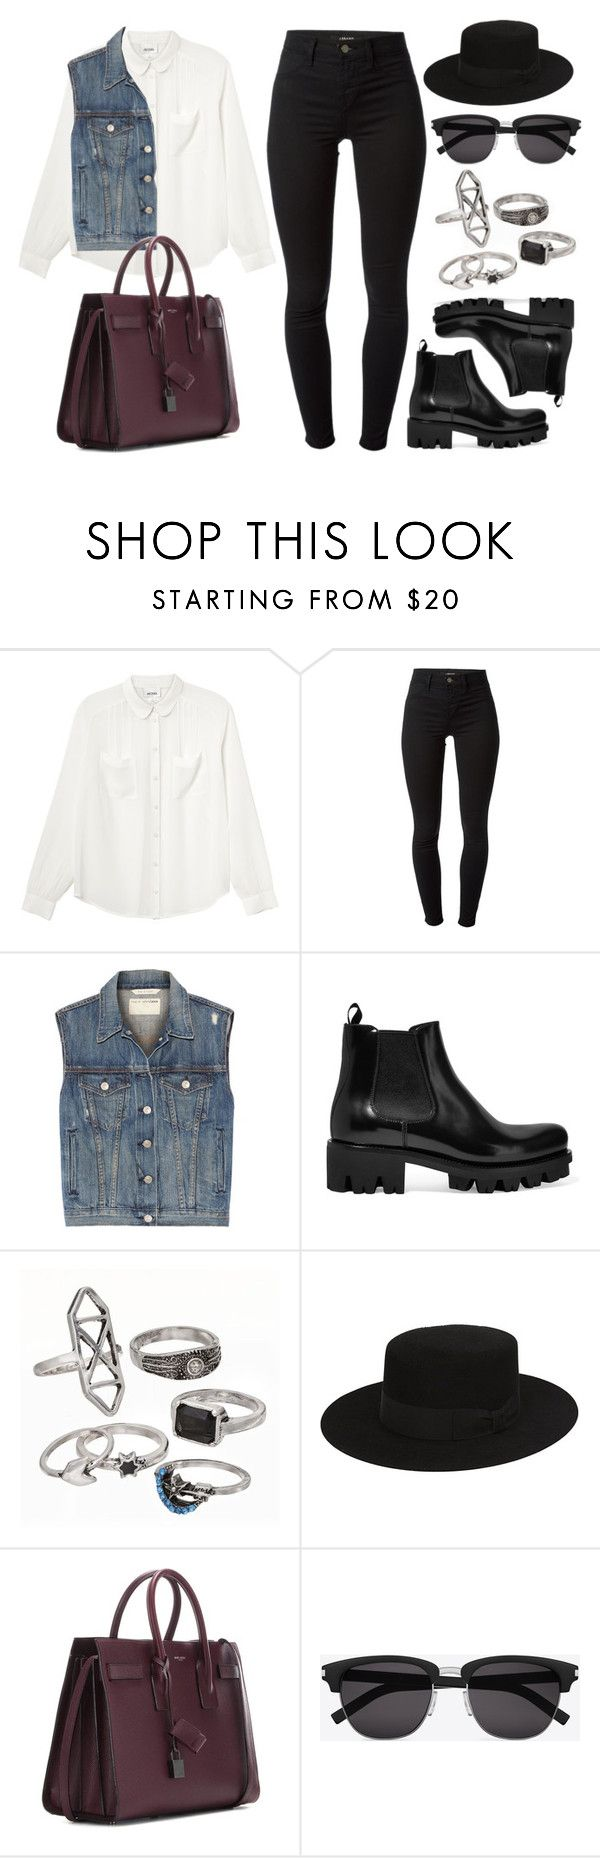 """Style #11074"" by vany-alvarado ❤ liked on Polyvore featuring Monki, J Brand, rag & bone, Prada, Mudd and Yves Saint Laurent"